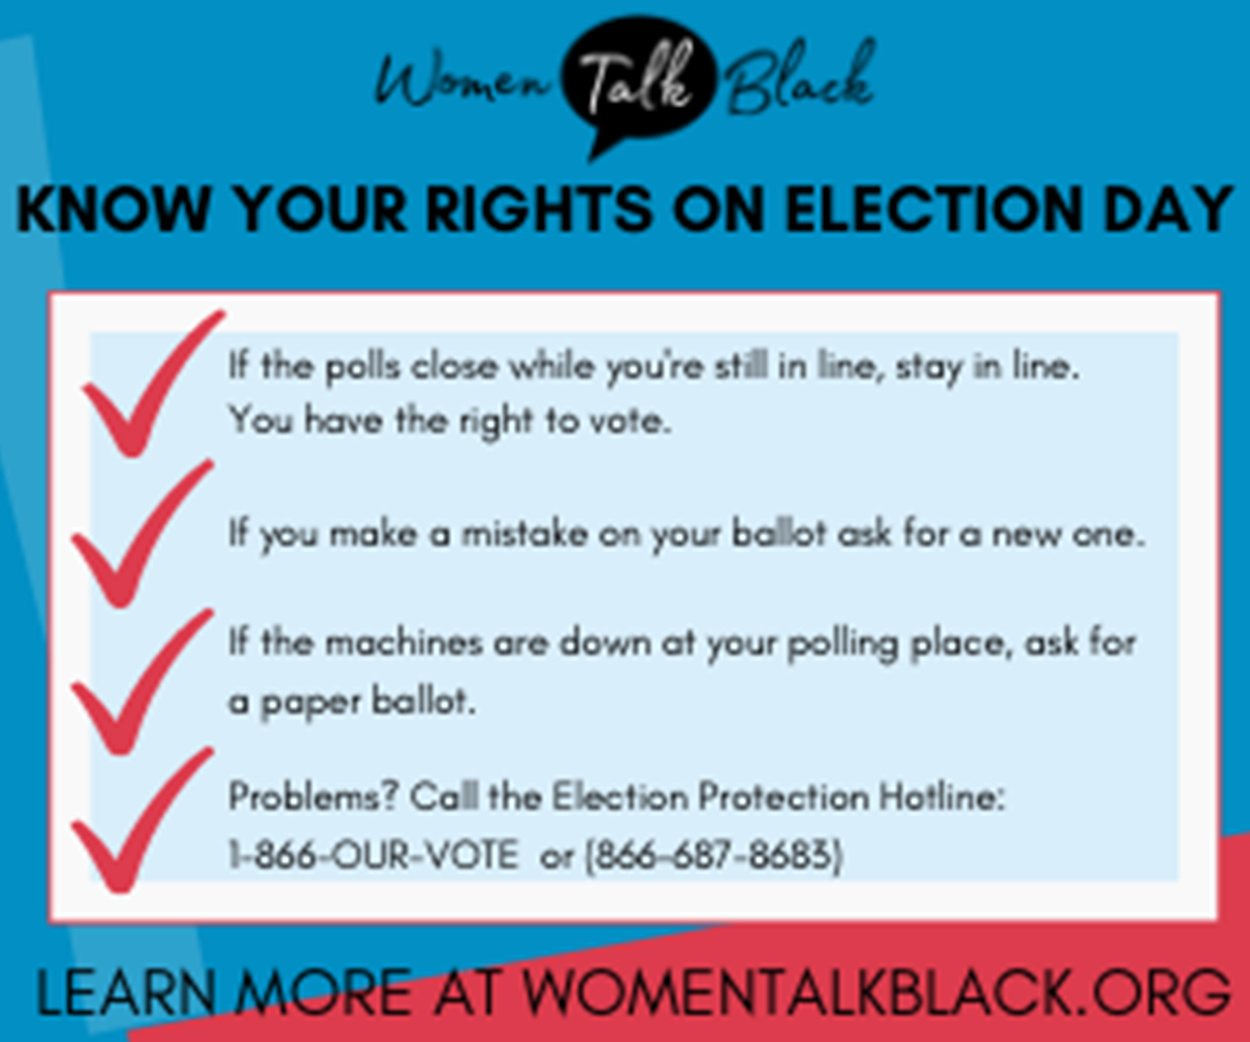 Women Talk Black - Election Day: Your Rights